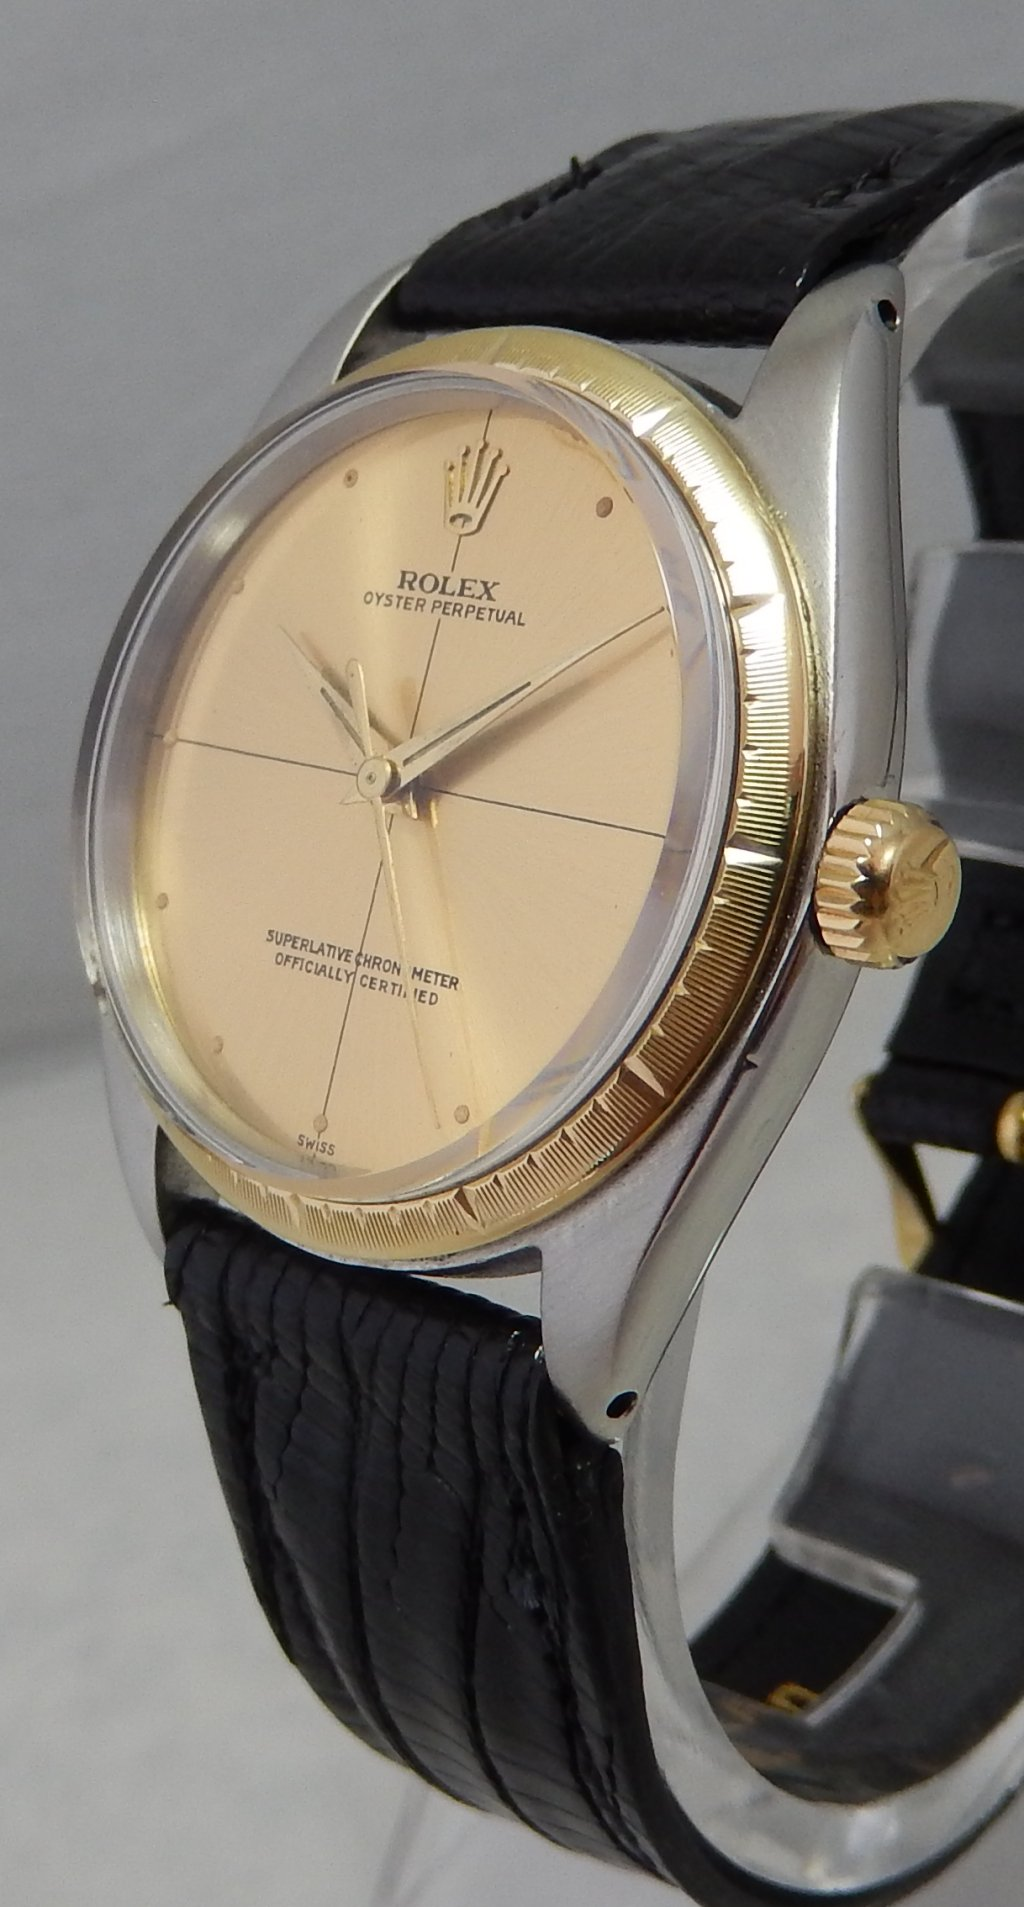 Details about Rolex Oyster Perpetual ZEPHYR 14k/ss Gold/SS Watch Cal 1560  Alligator Strap 1962